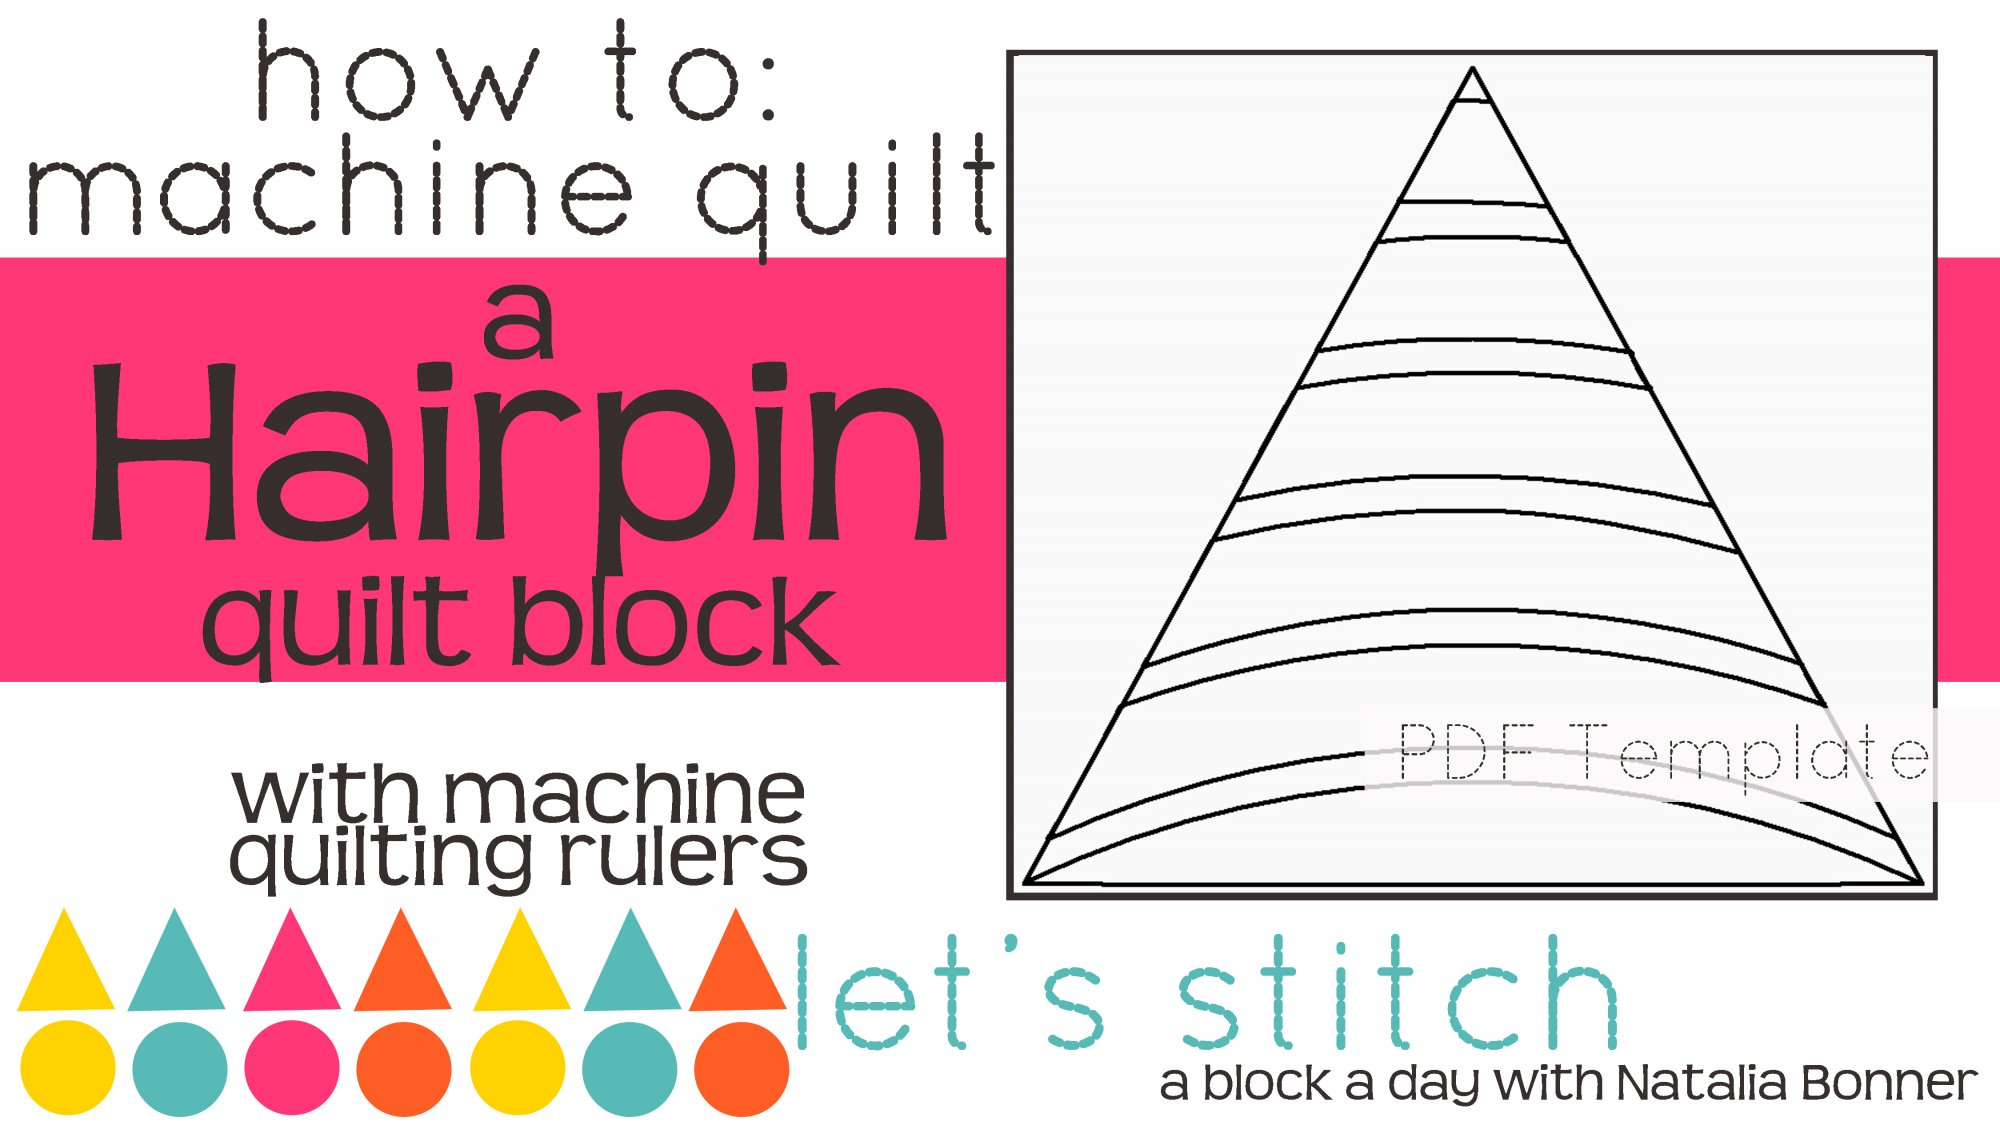 Let's Stitch - A Block a Day With Natalia Bonner - PDF - Hairpin